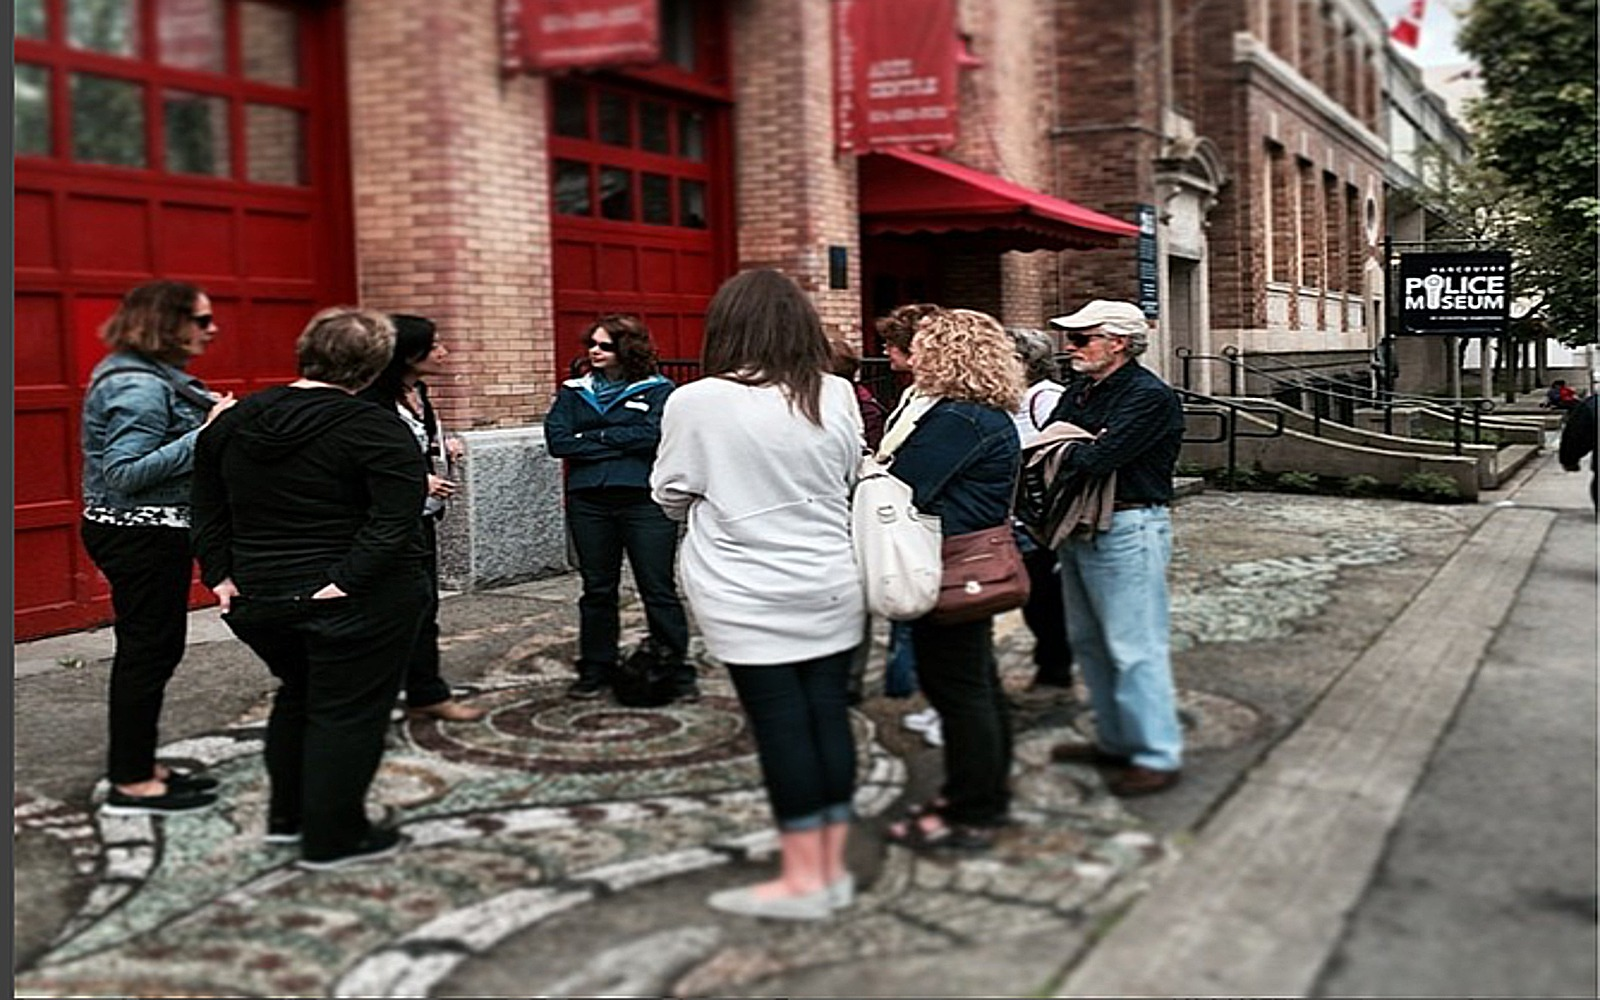 The Sins of the City Walking Tour outside the Vancouver Police Museum